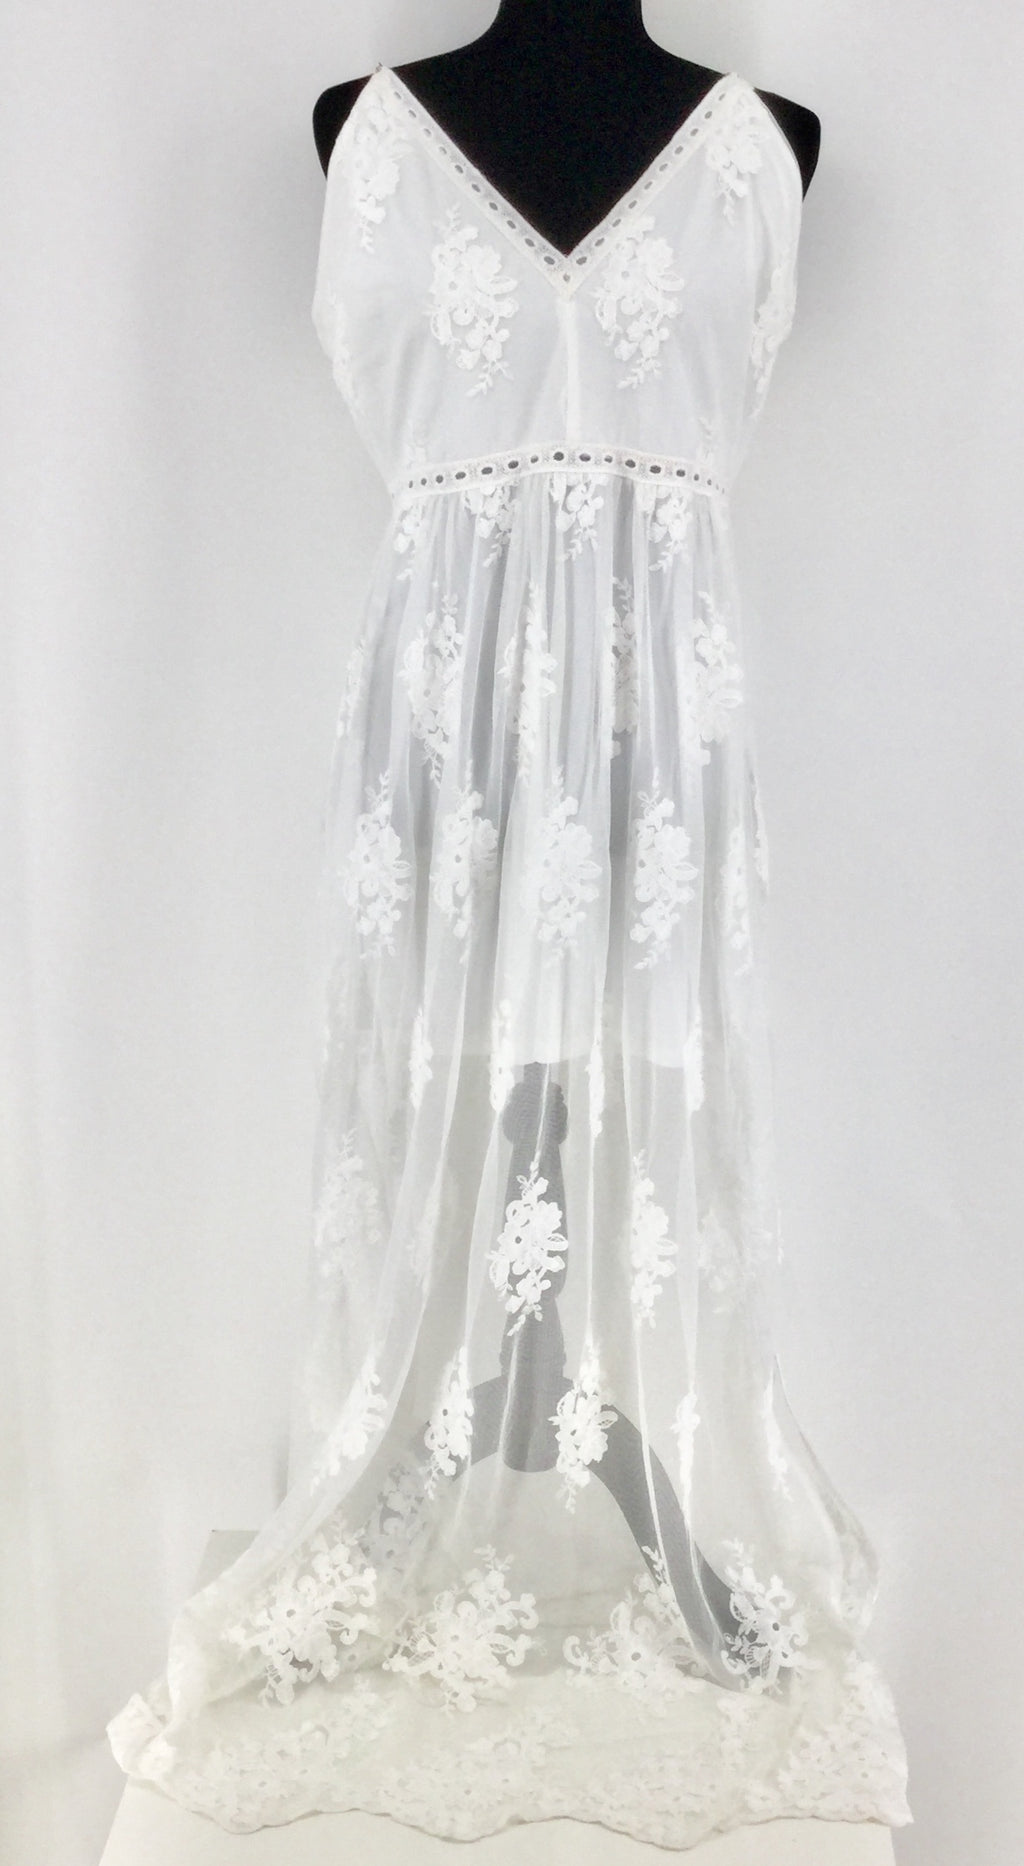 NEW WITH TAGS! Long White Lace Socialite Maxi Dress Size: XL